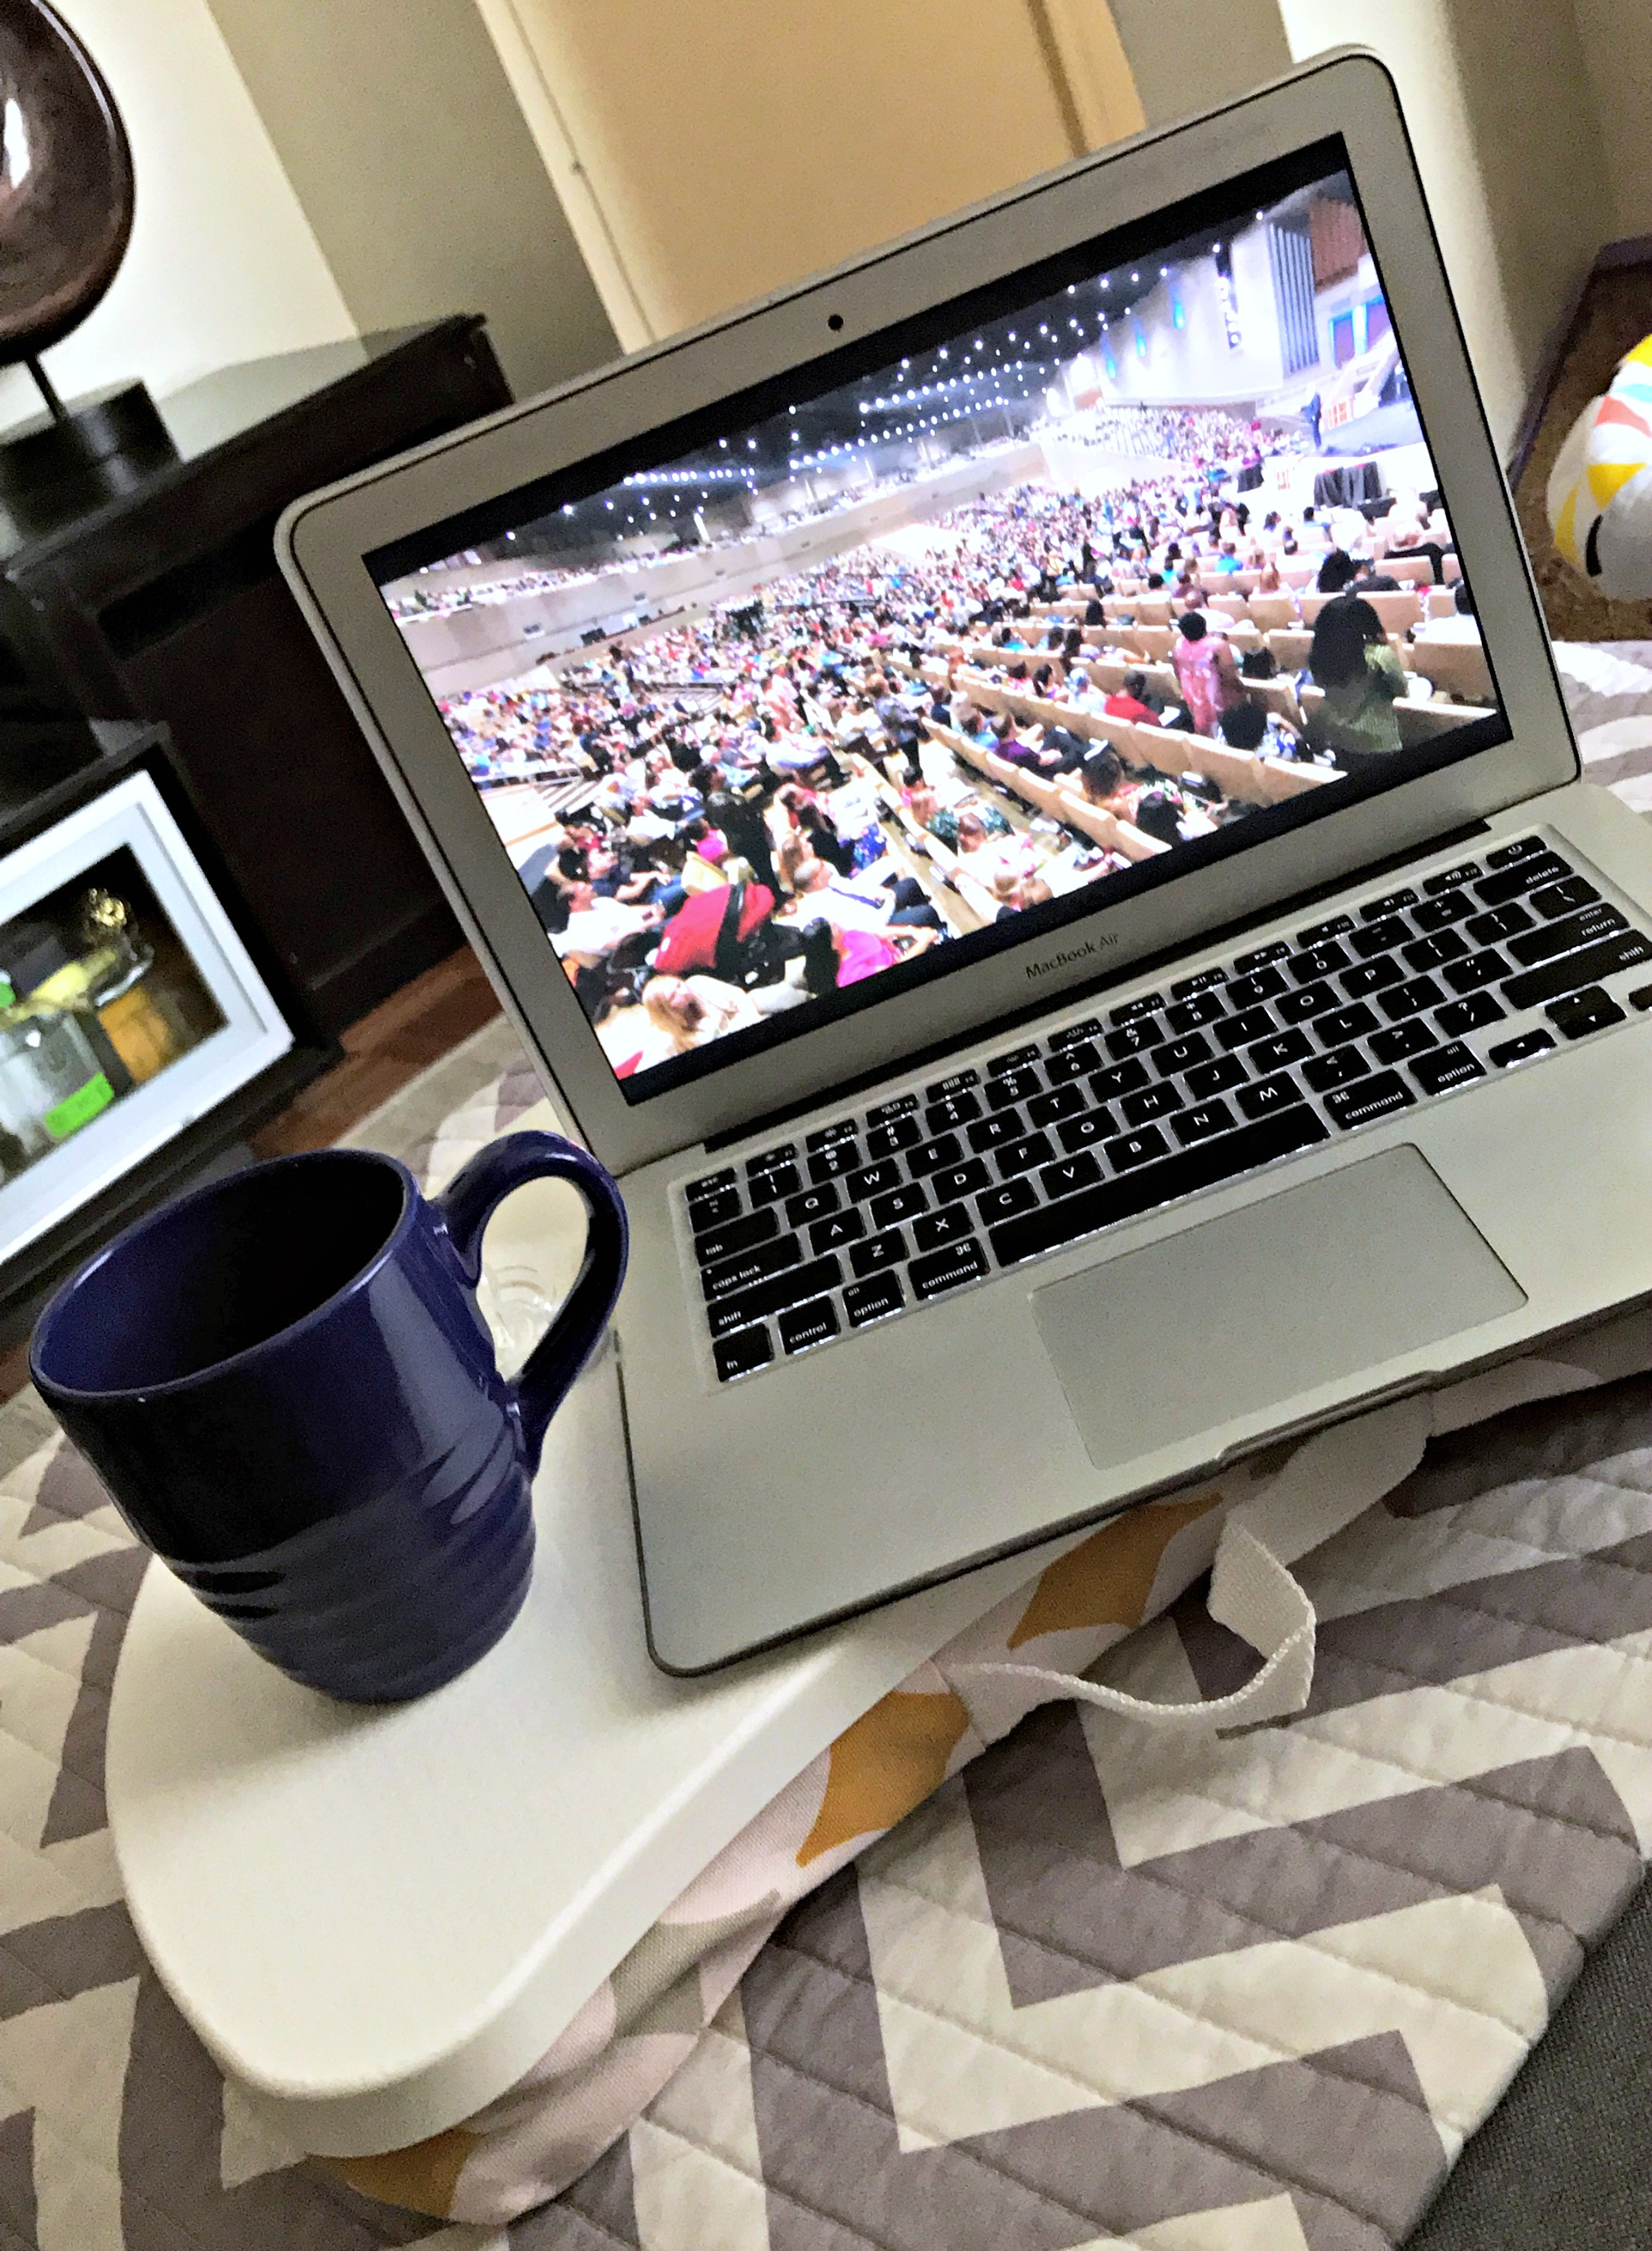 streaming church online